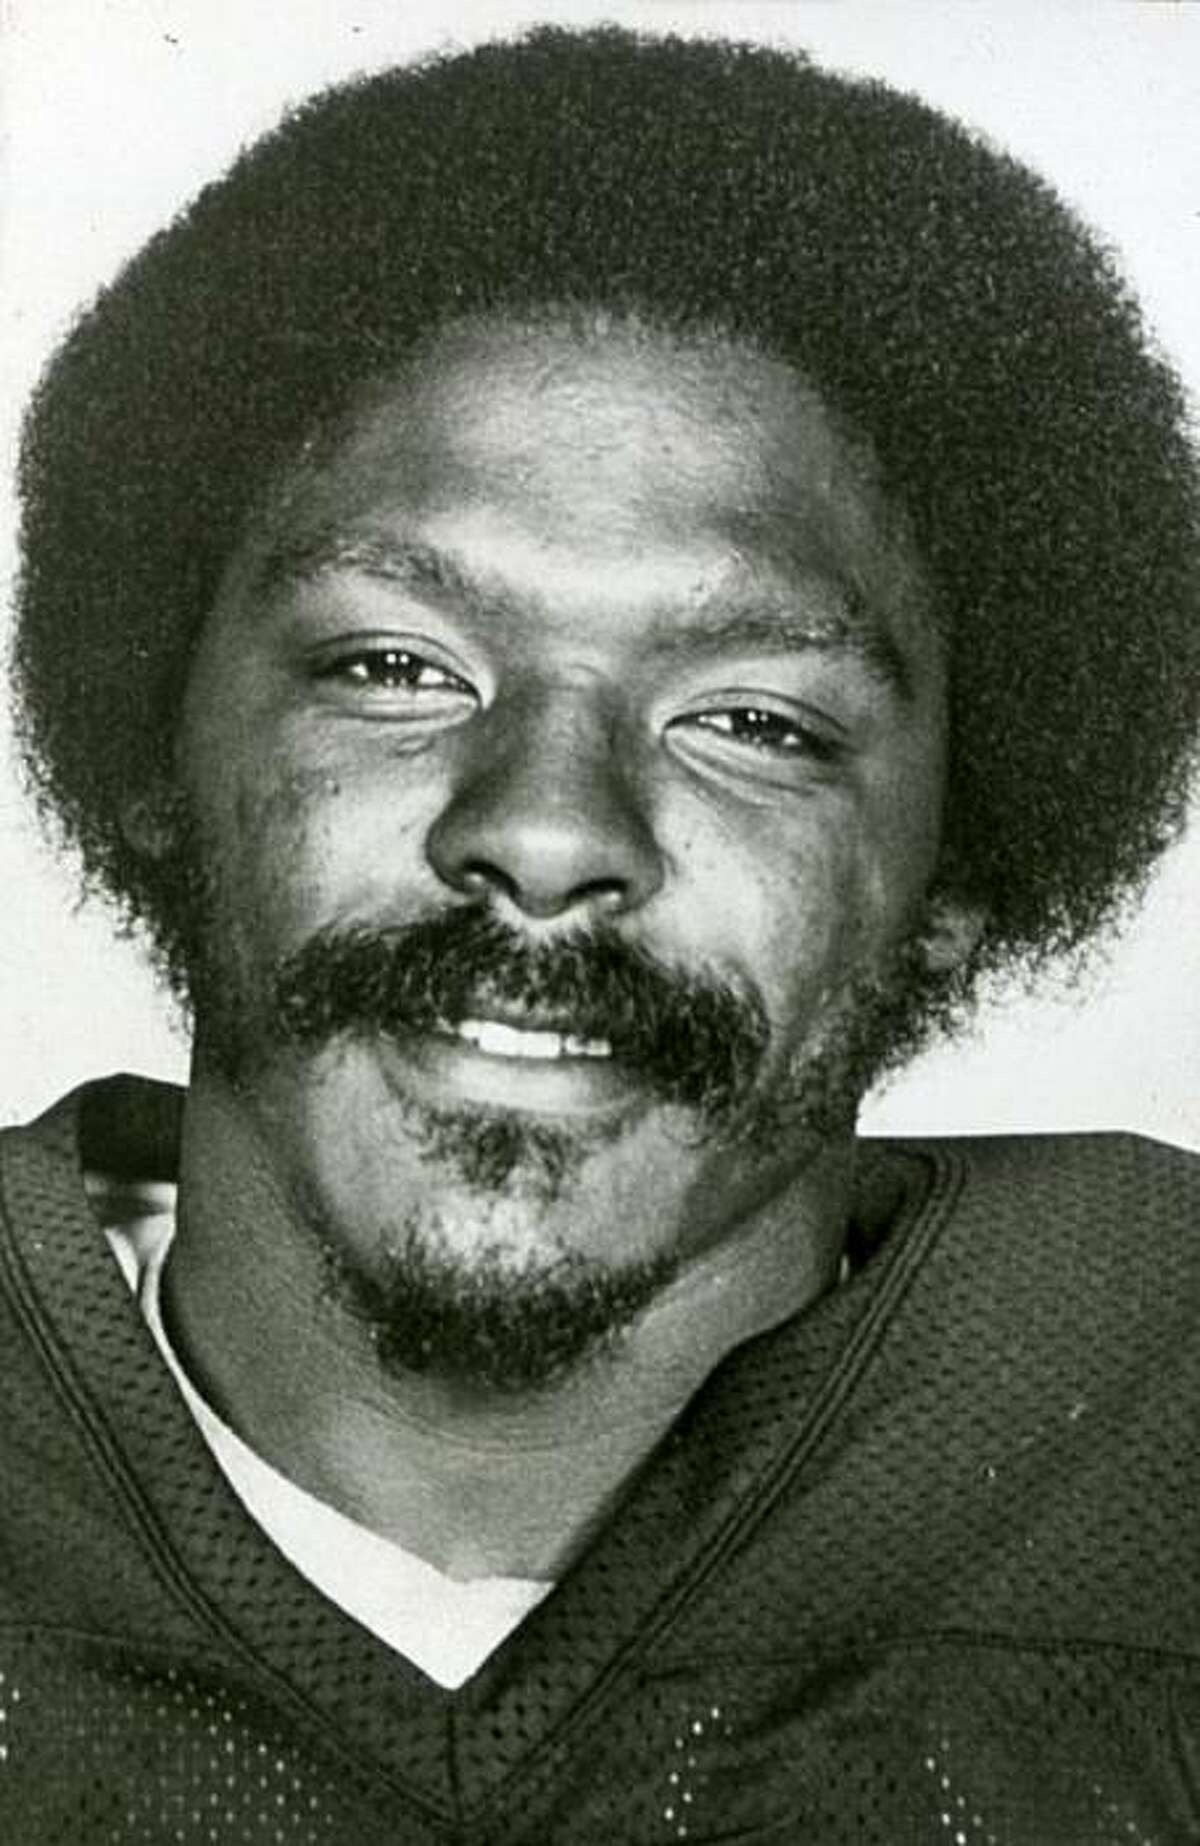 Jack Tatum of the Oakland Raider circa 1980. From Chronicle library files